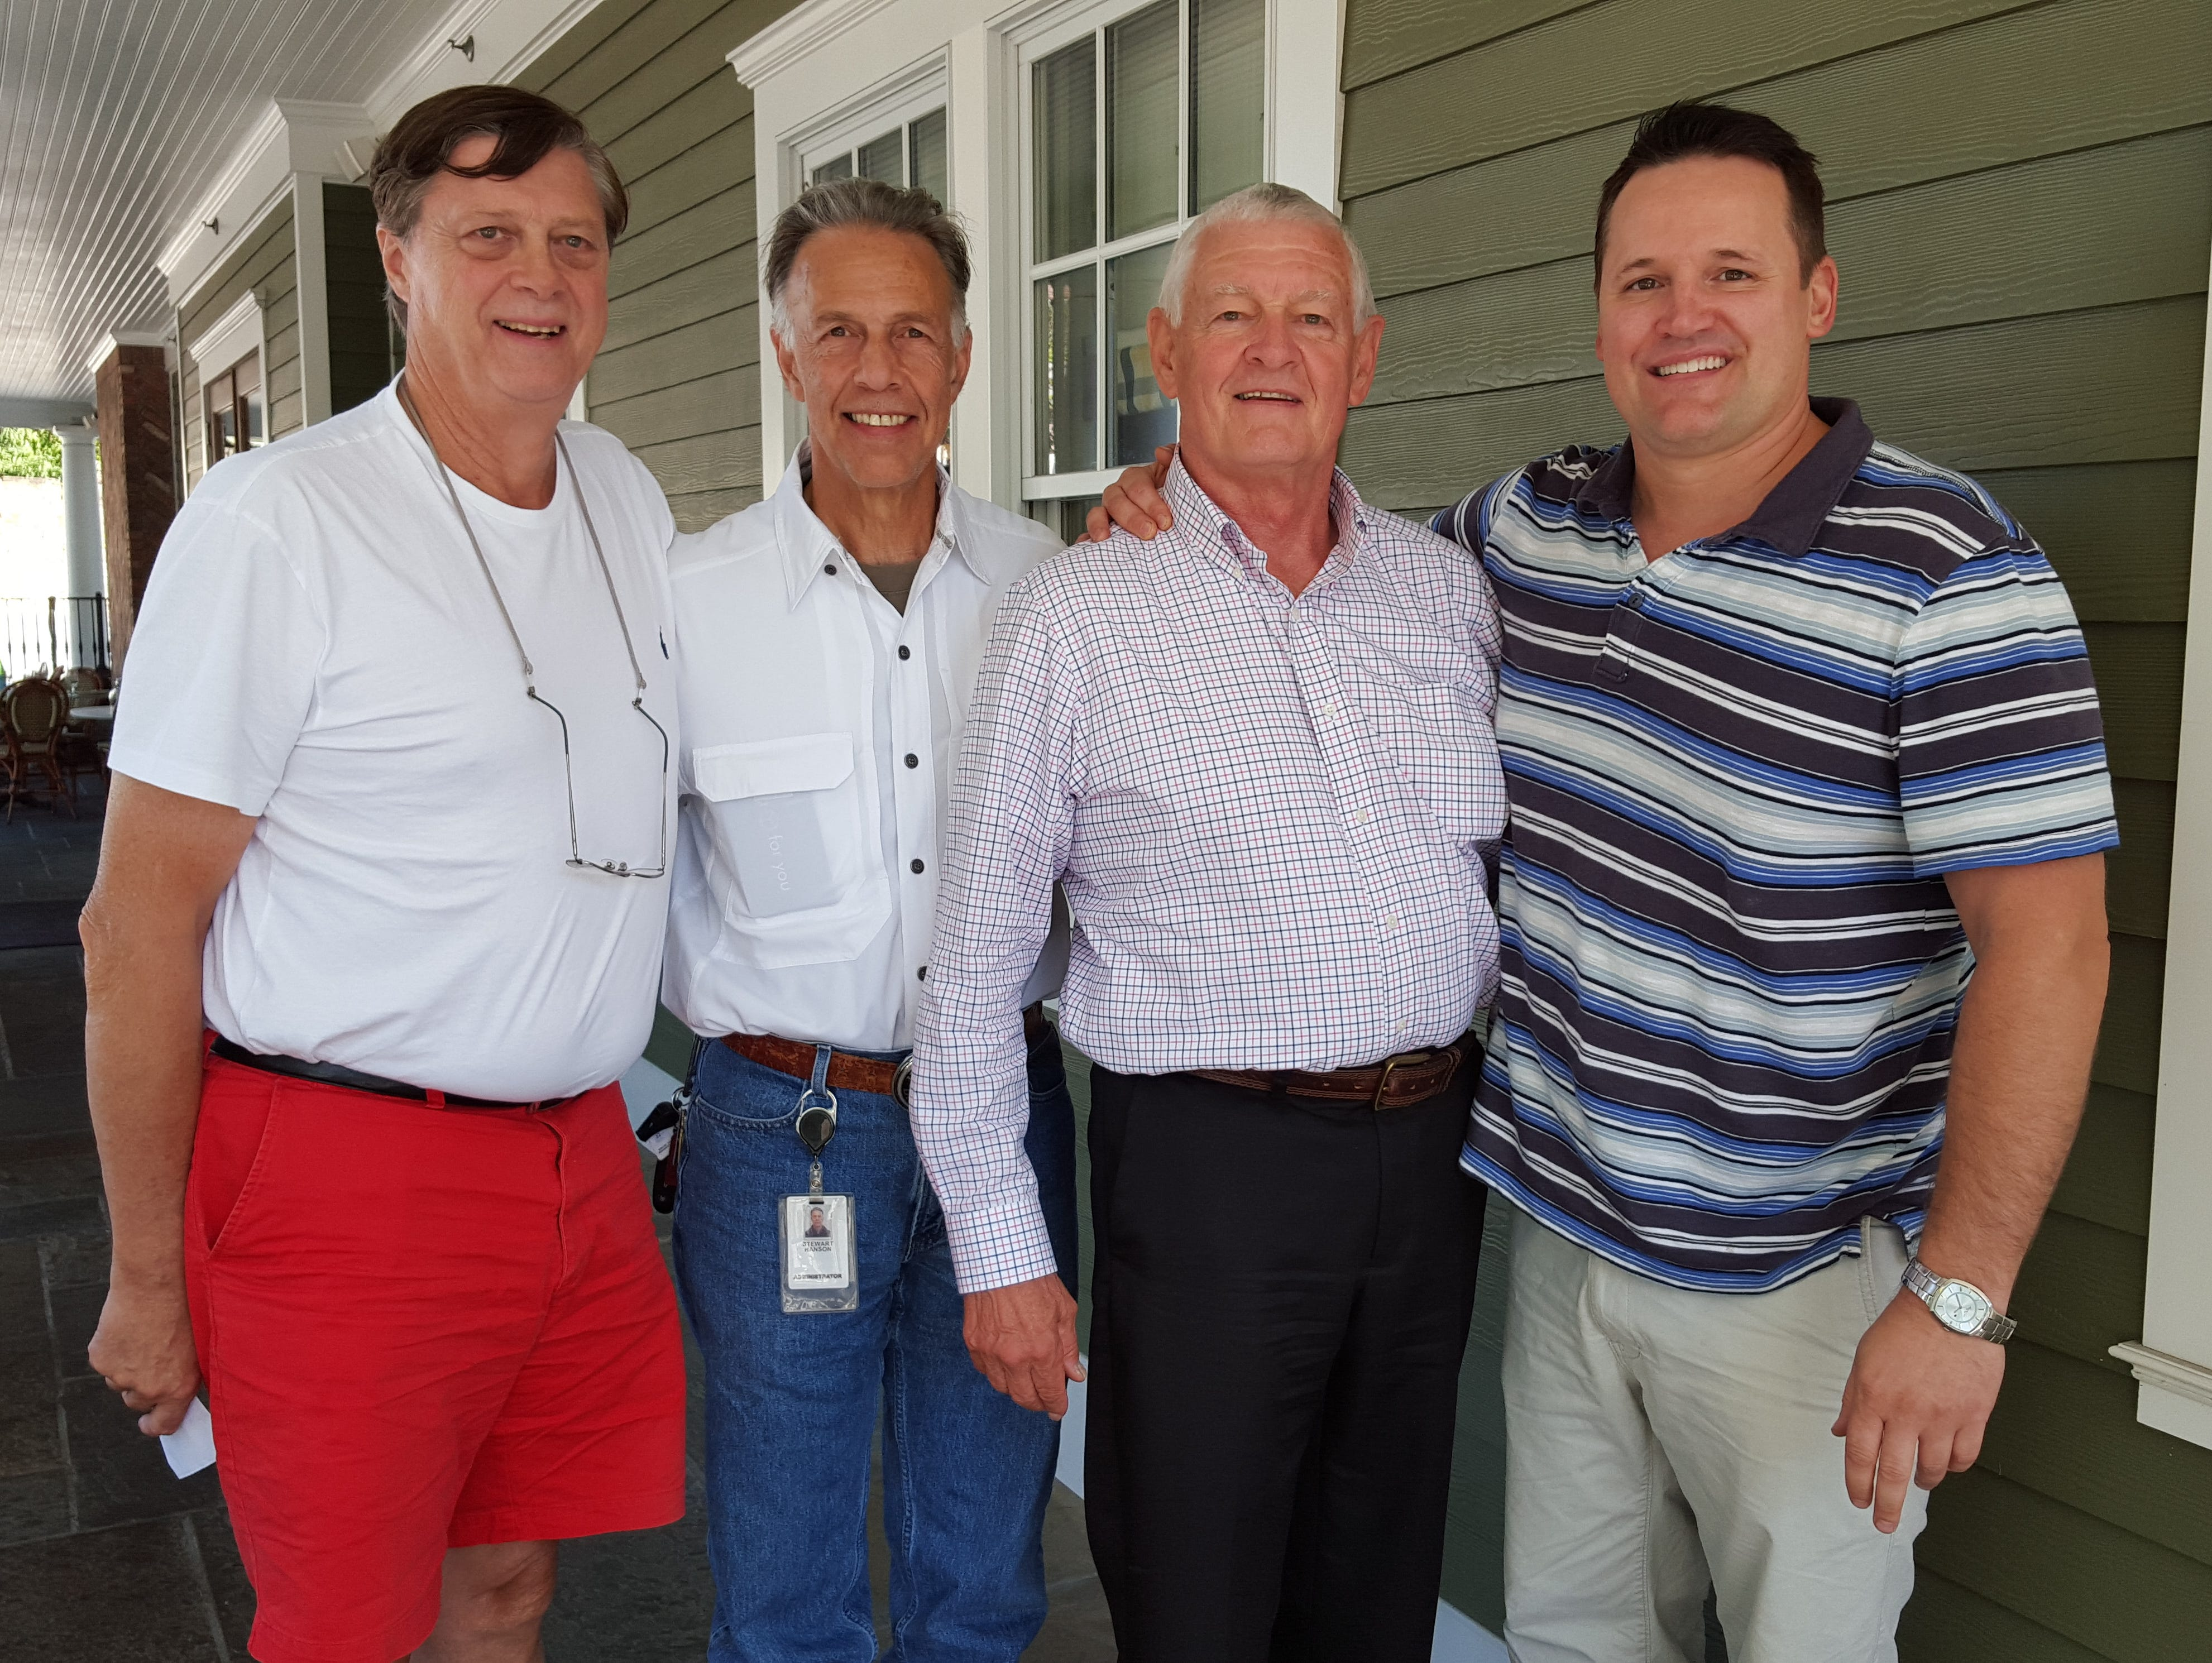 Captains of the Rye/Harrison Tradition Committee meet with the schools' athletic directors. Pictured from left to right): Rye's Steve Feeney, Harrison athletic director Stu Hanson, Rye athletic director Rod Mergardt and Harrison's John Stubenvoll.